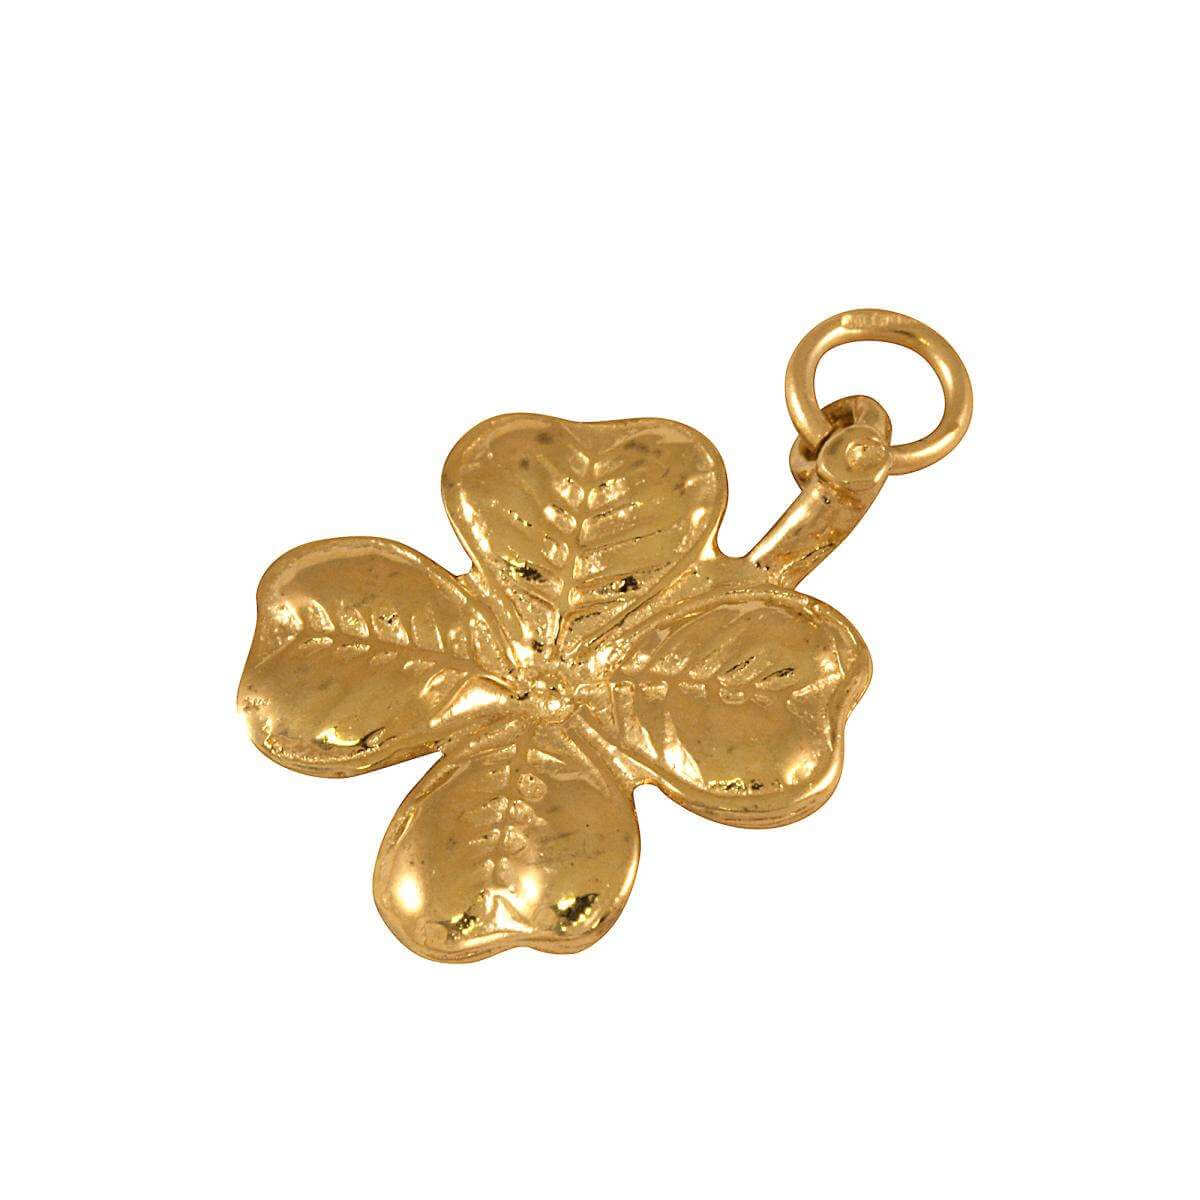 9ct Gold Clover Charm